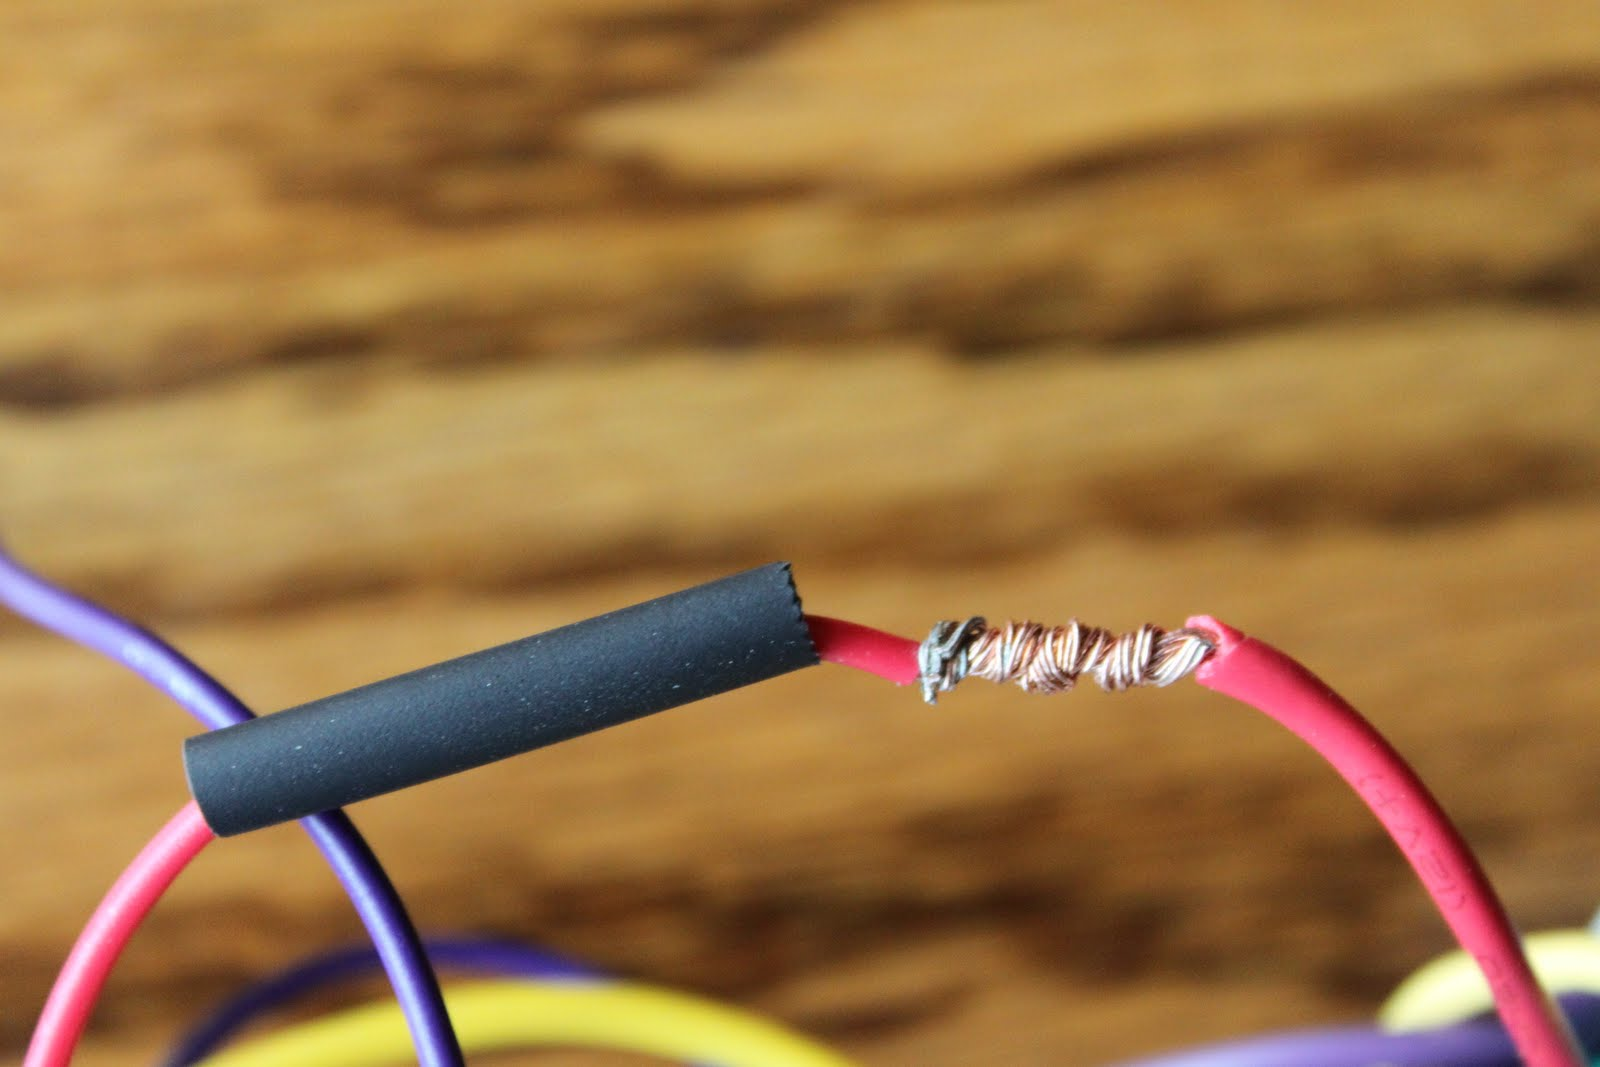 hight resolution of bryan s blog soldering car stereo harness wires car radio wiring harness solder